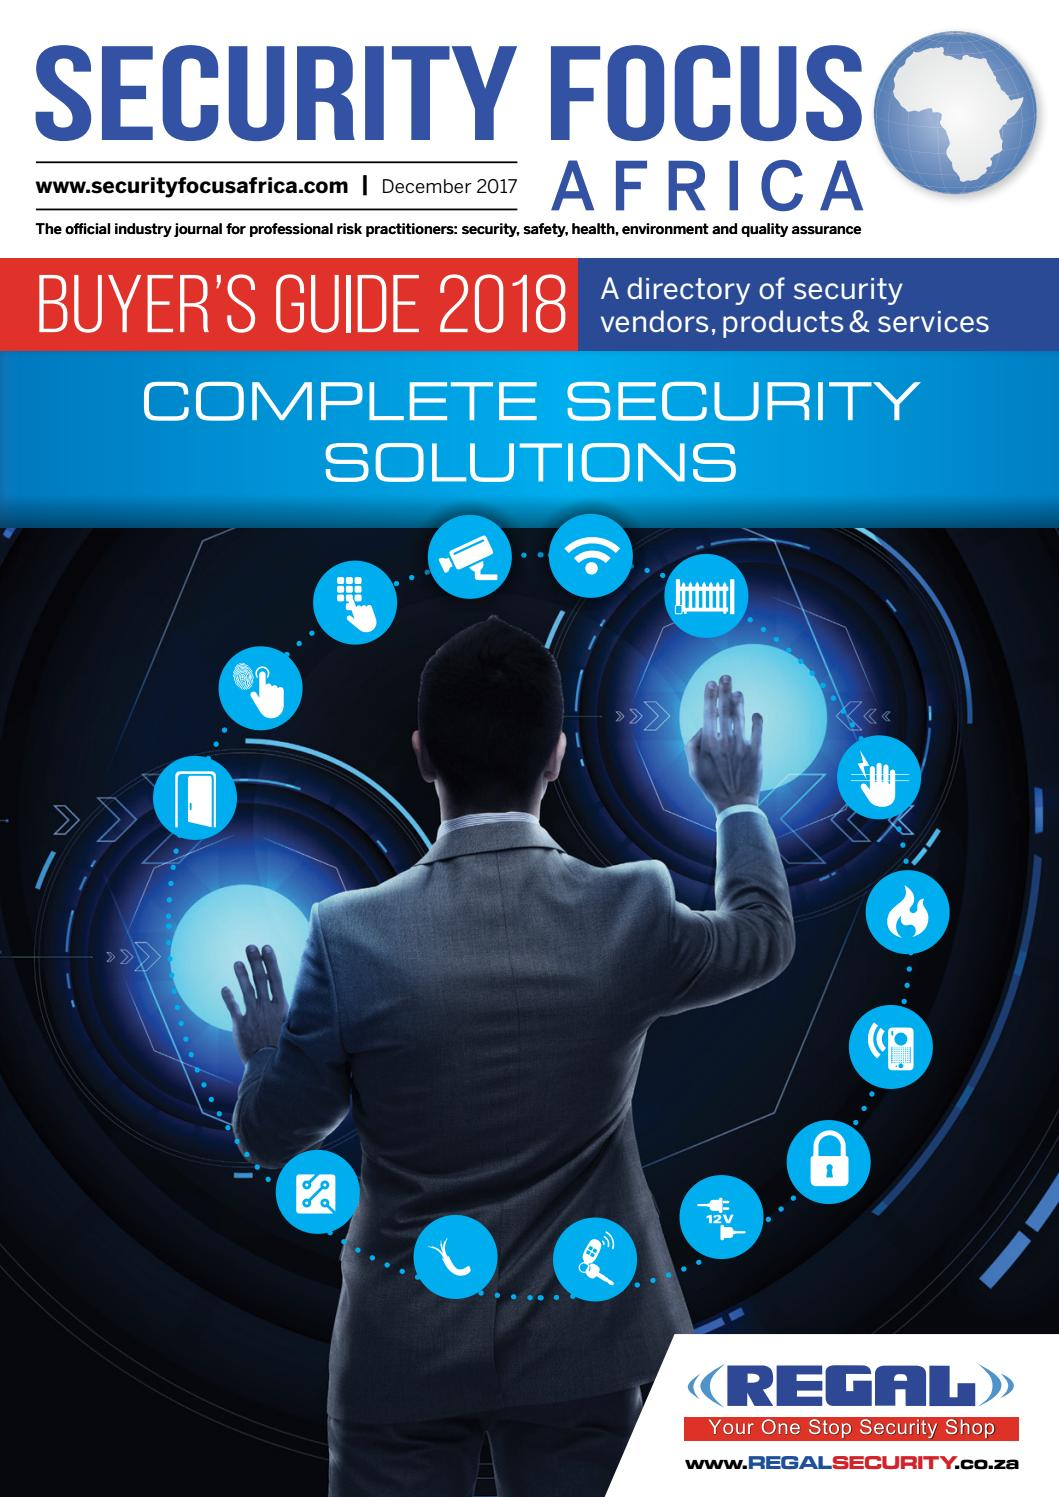 Security Focus Africa Buyers Guide 2018 by Contact